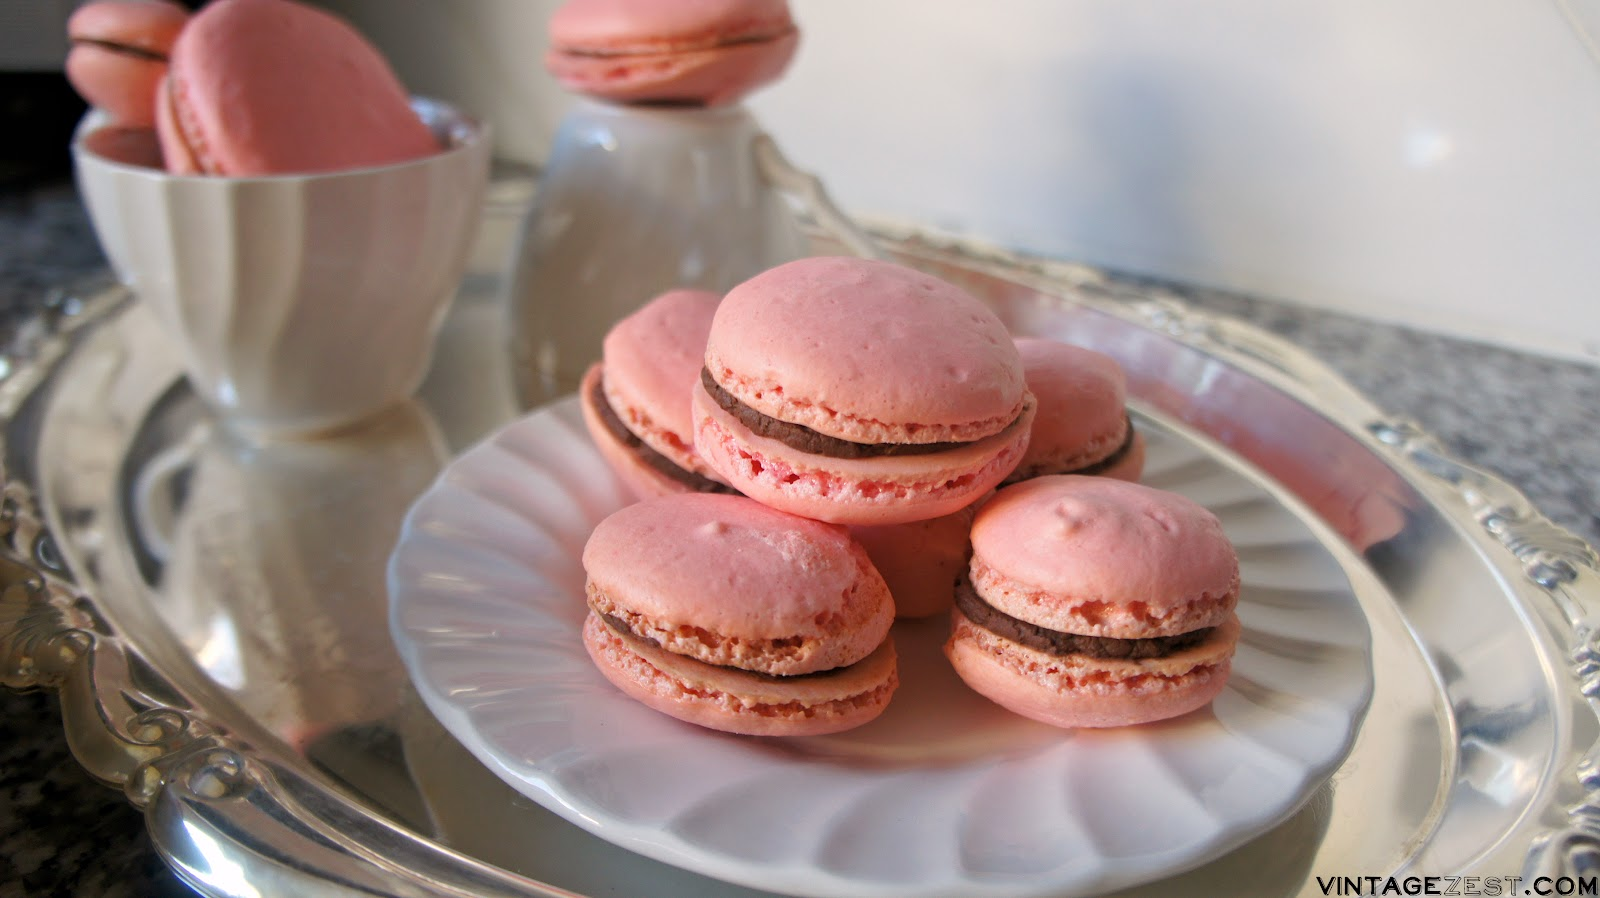 Peppermint Mocha French Macarons recipe on Diane's Vintage Zest  #ad #DelightfulMoments #CollectiveBias